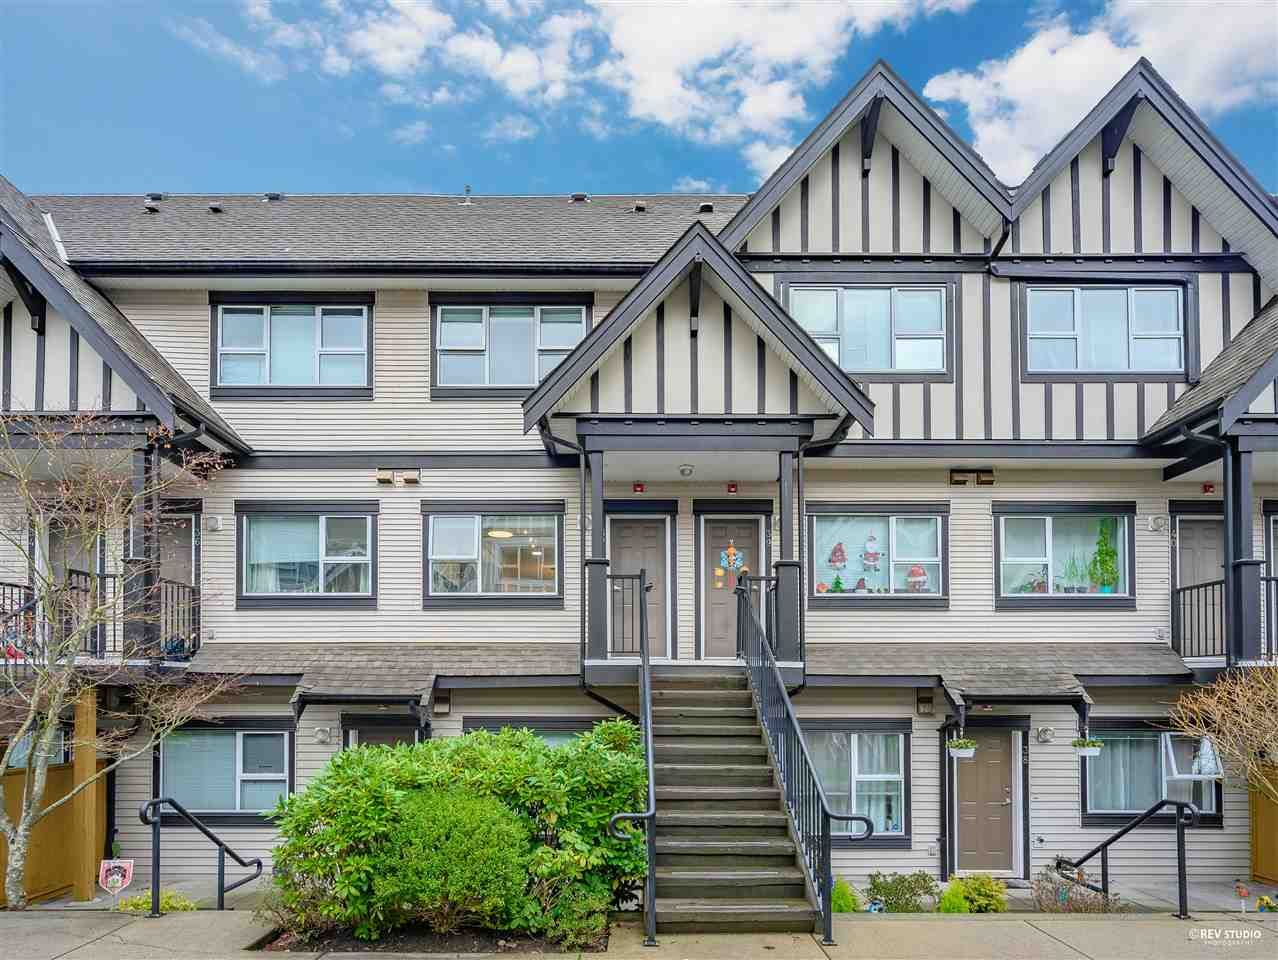 Main Photo: 37 730 FARROW STREET in Coquitlam: Coquitlam West Townhouse for sale : MLS®# R2528929